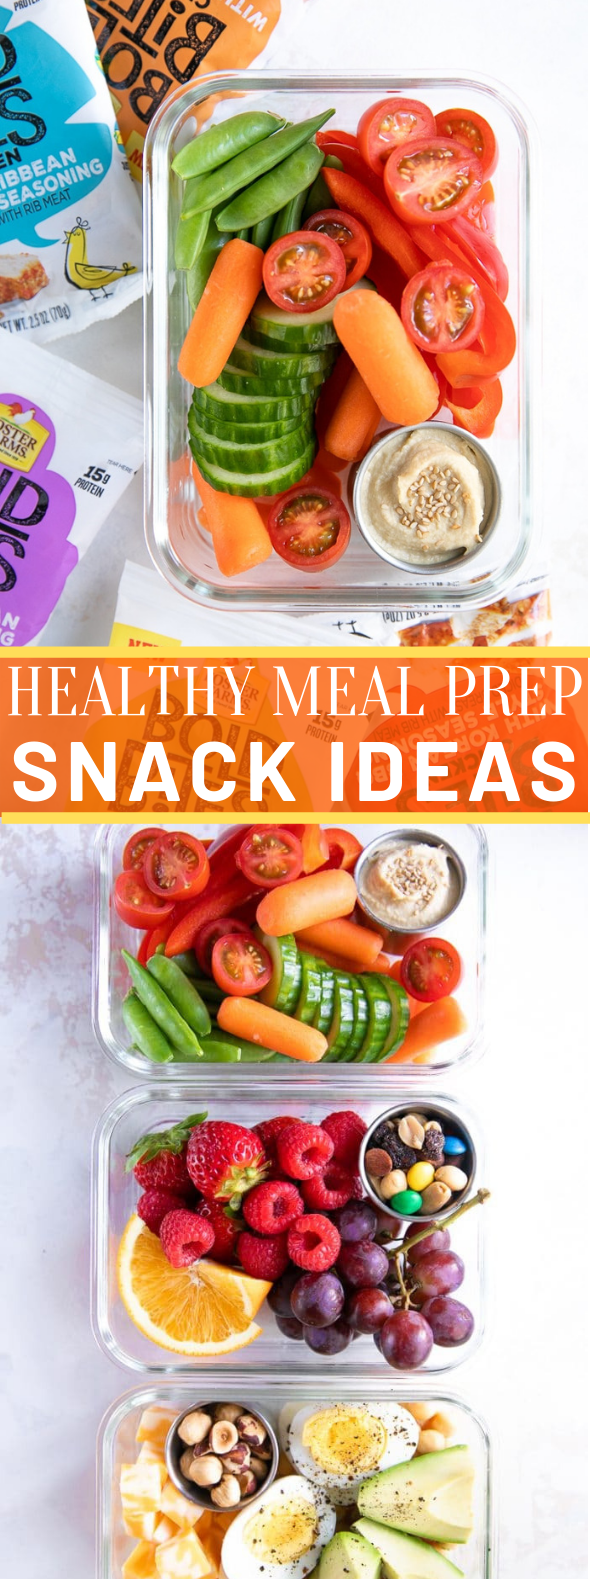 Healthy On-the-Go Meal Prep Snack Ideas #healthysnack #school